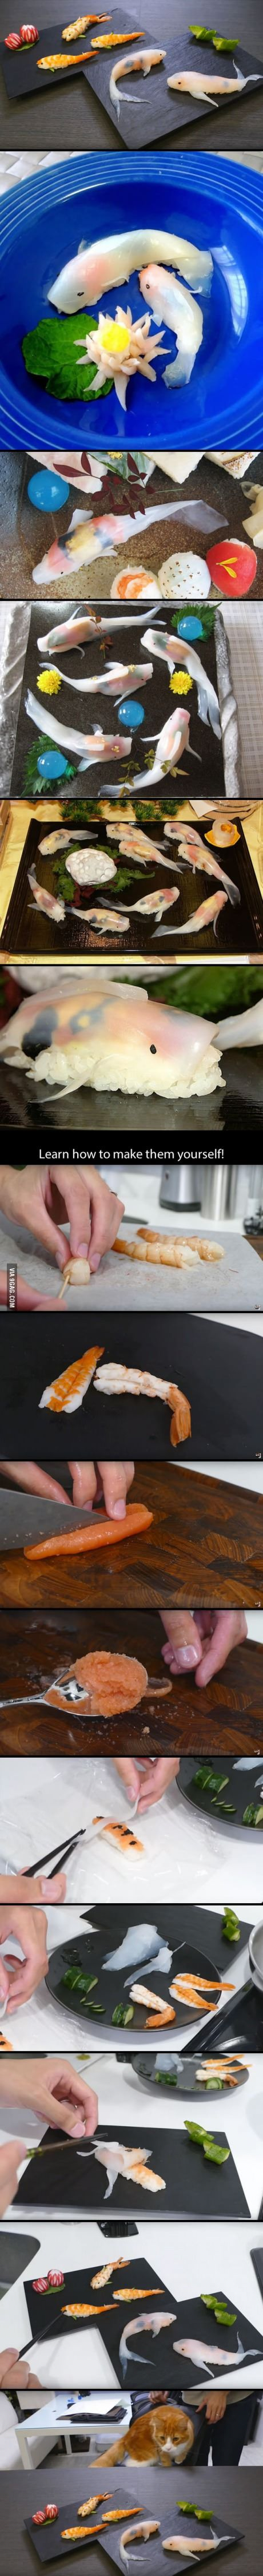 日本人のごはん/お弁当 Japanese meals/Bento 錦鯉鮨  This Guy Makes Sushi That Looks Like Real-Life Koi In A Few Simple Steps